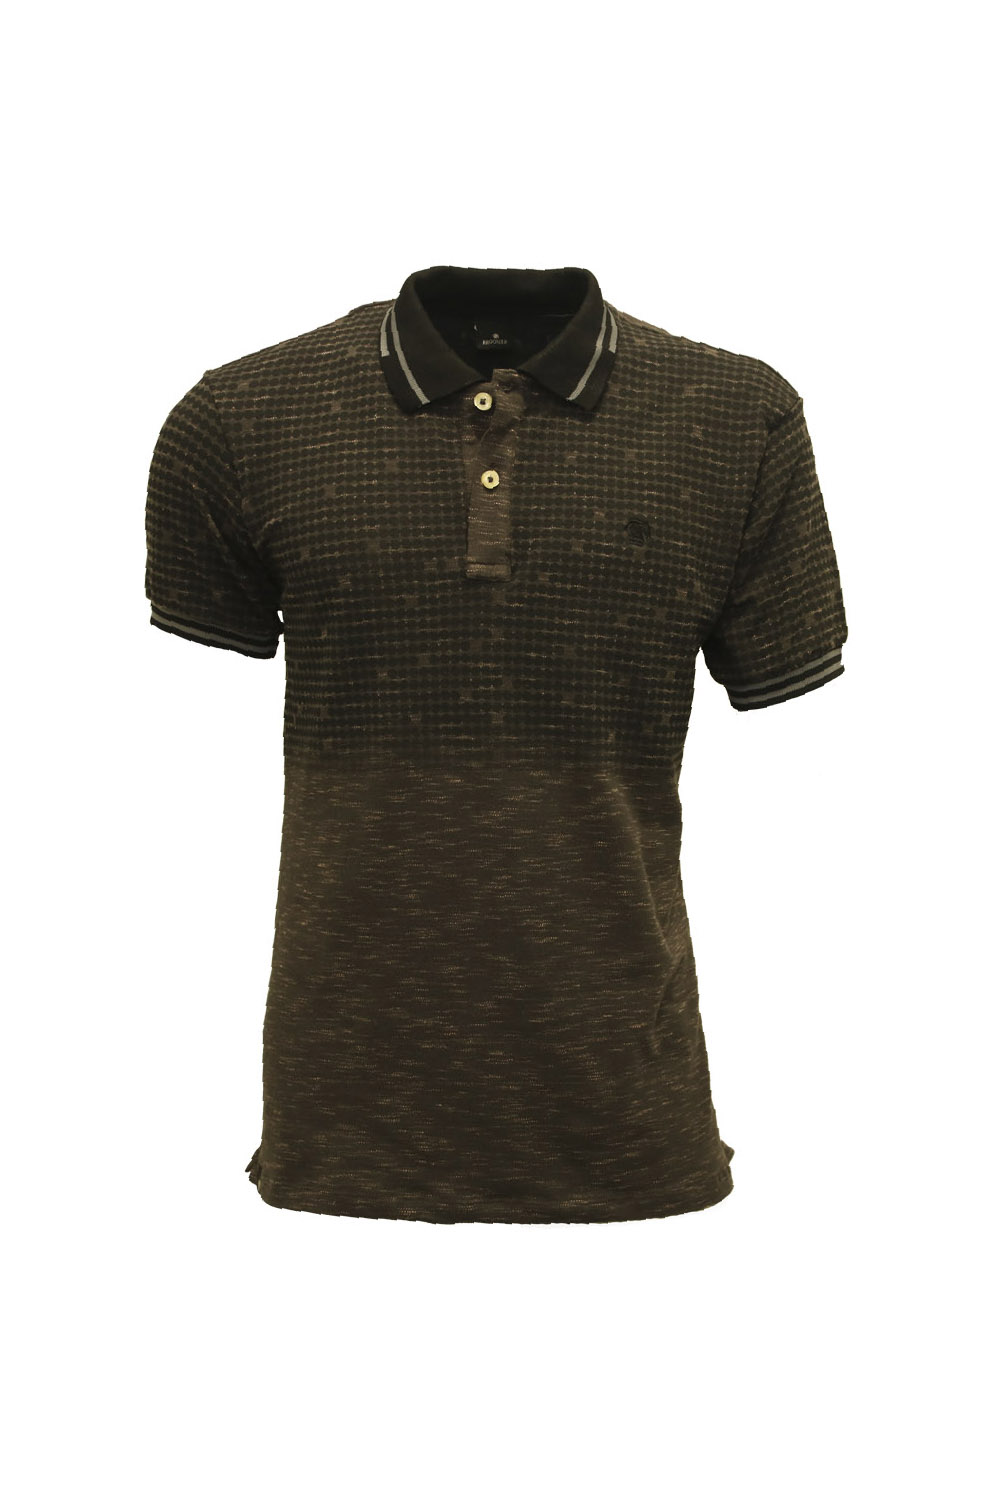 POLO MC CASUAL SLIM POLIALGODAO COMPOSE ESTAMPA PRETO